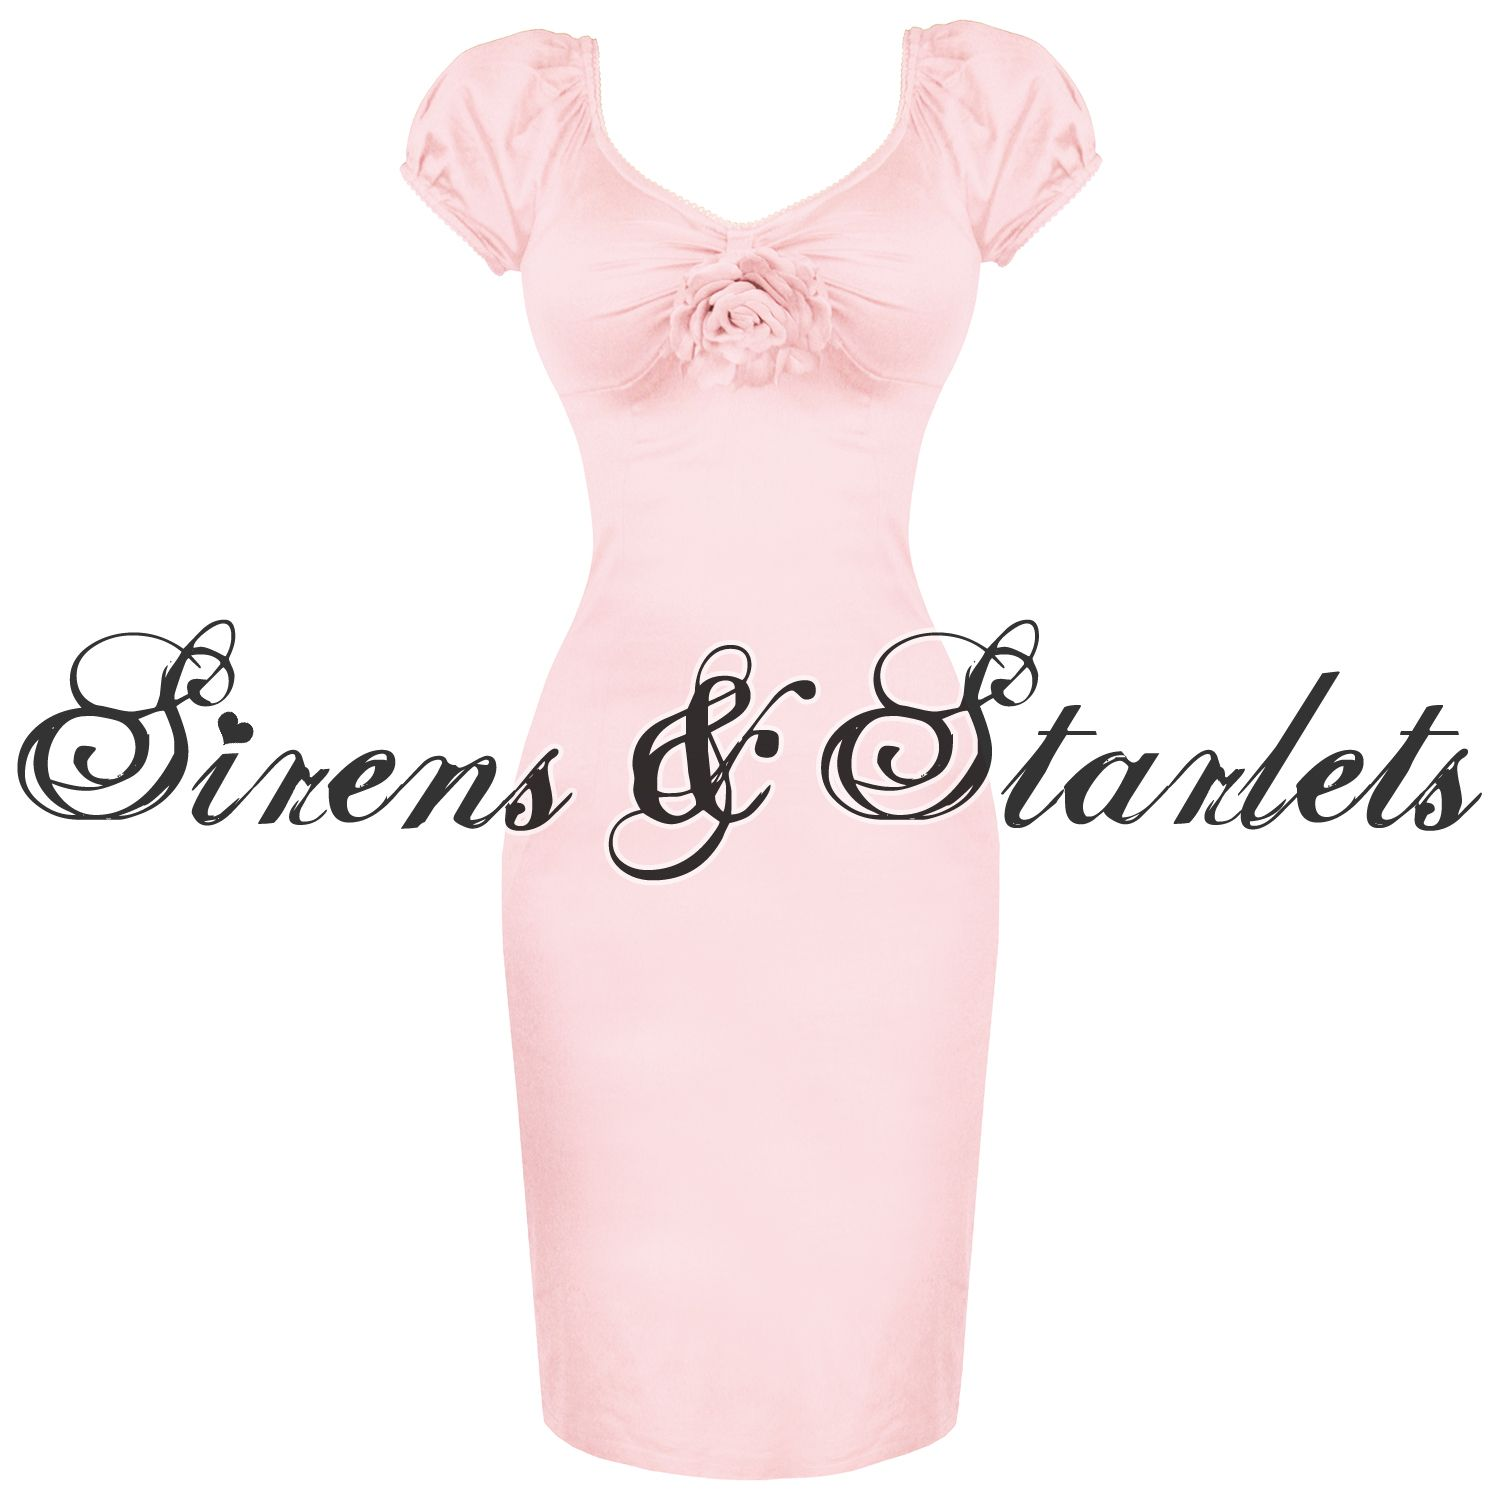 LADIES PINK FITTED VTG 50S BETTIE PAGE STYLE COCKTAIL PARTY CAREER PENCIL DRESS